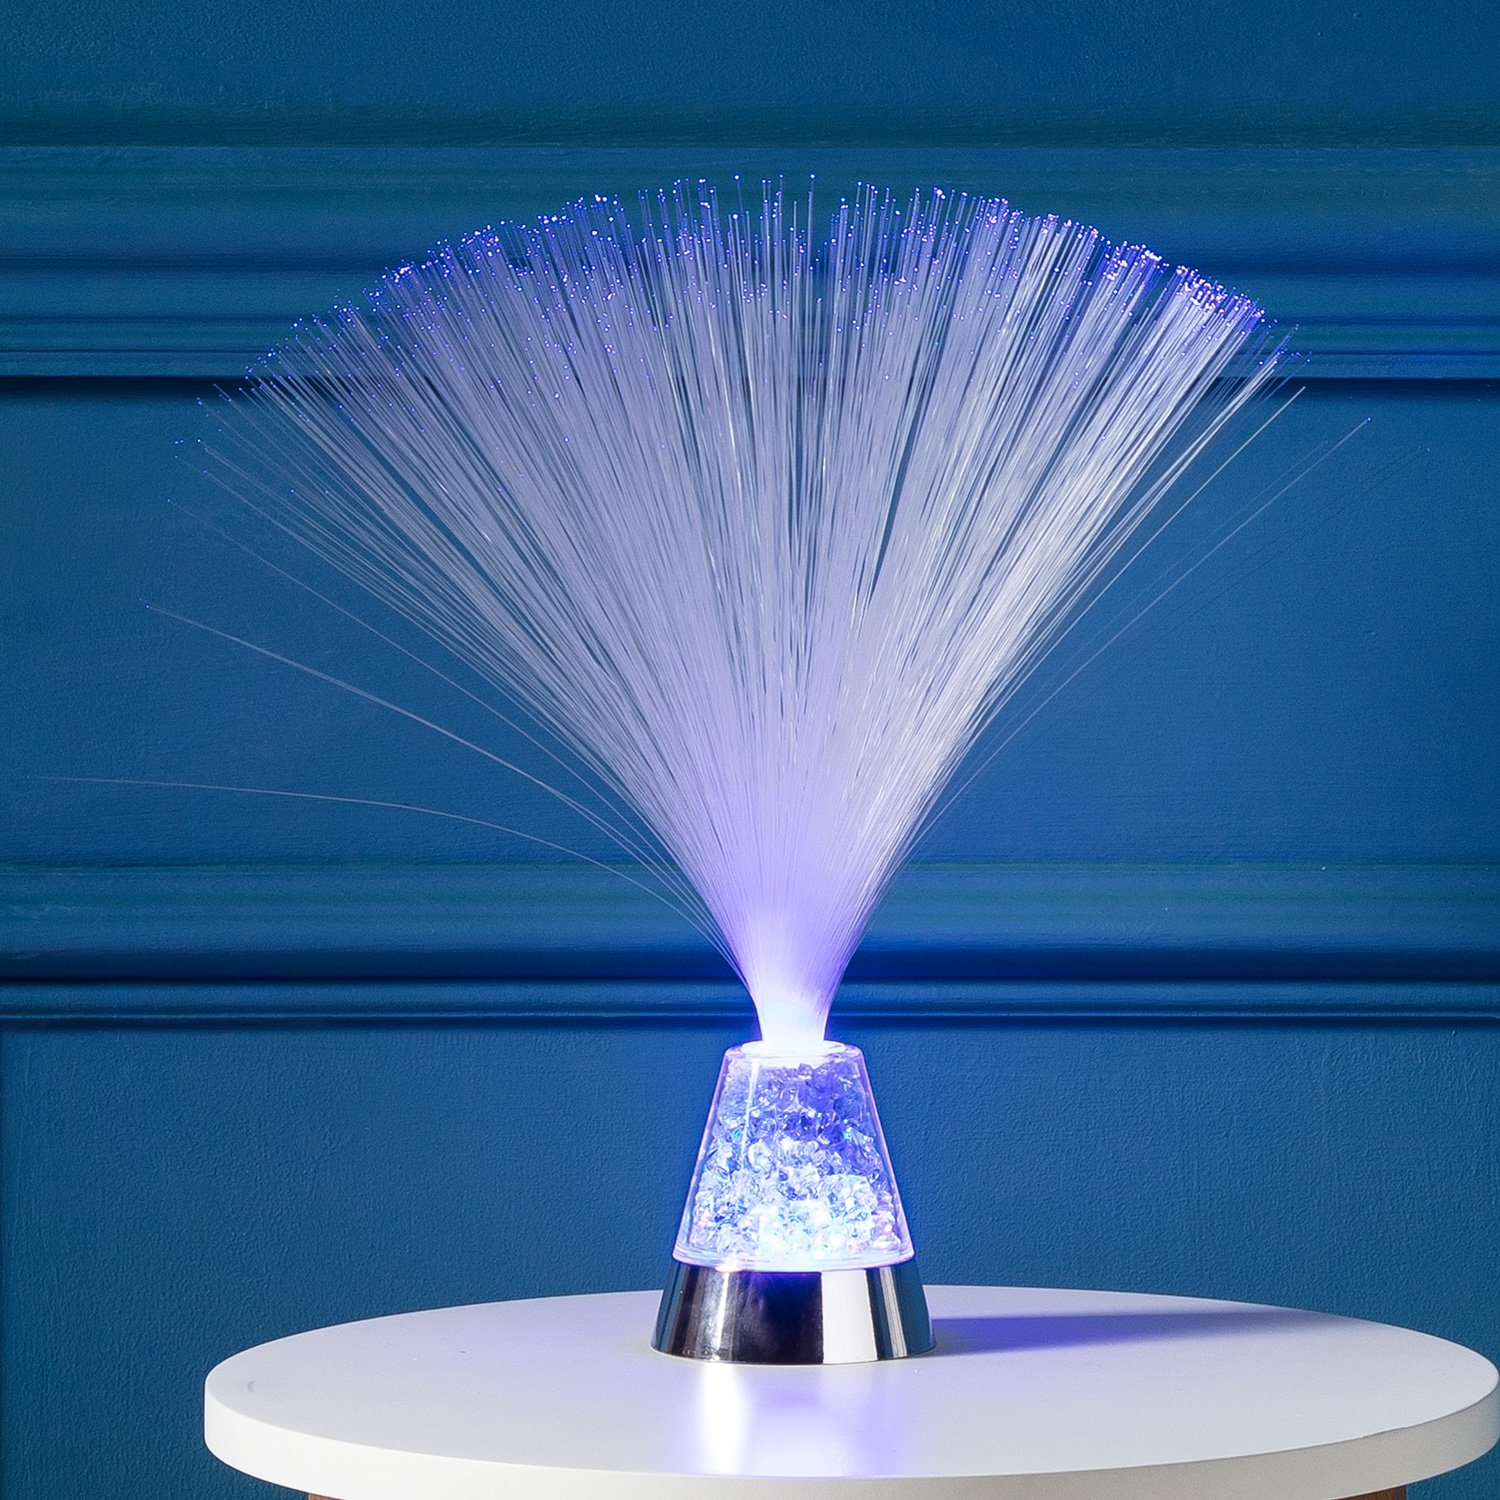 Fibre Optic LED Bedside Lamp by Lights4fun